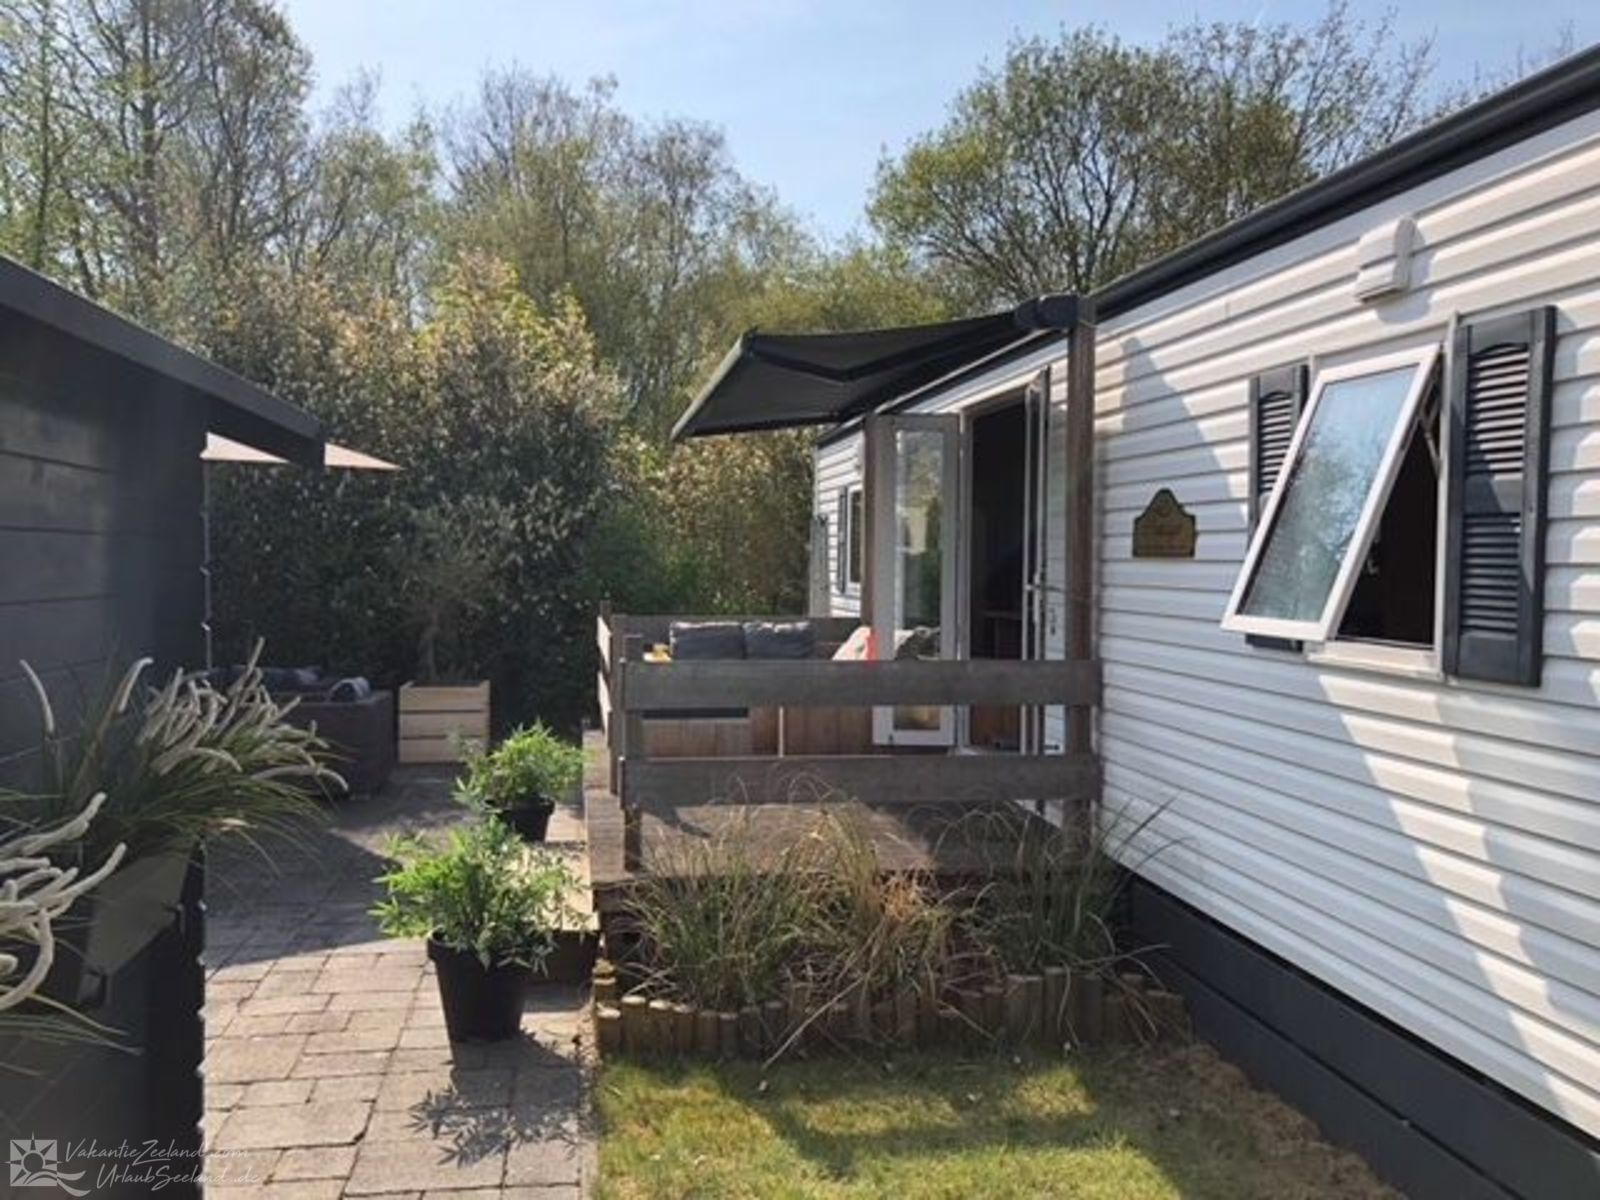 VZ713 Holiday chalet in Renesse, the Netherlands